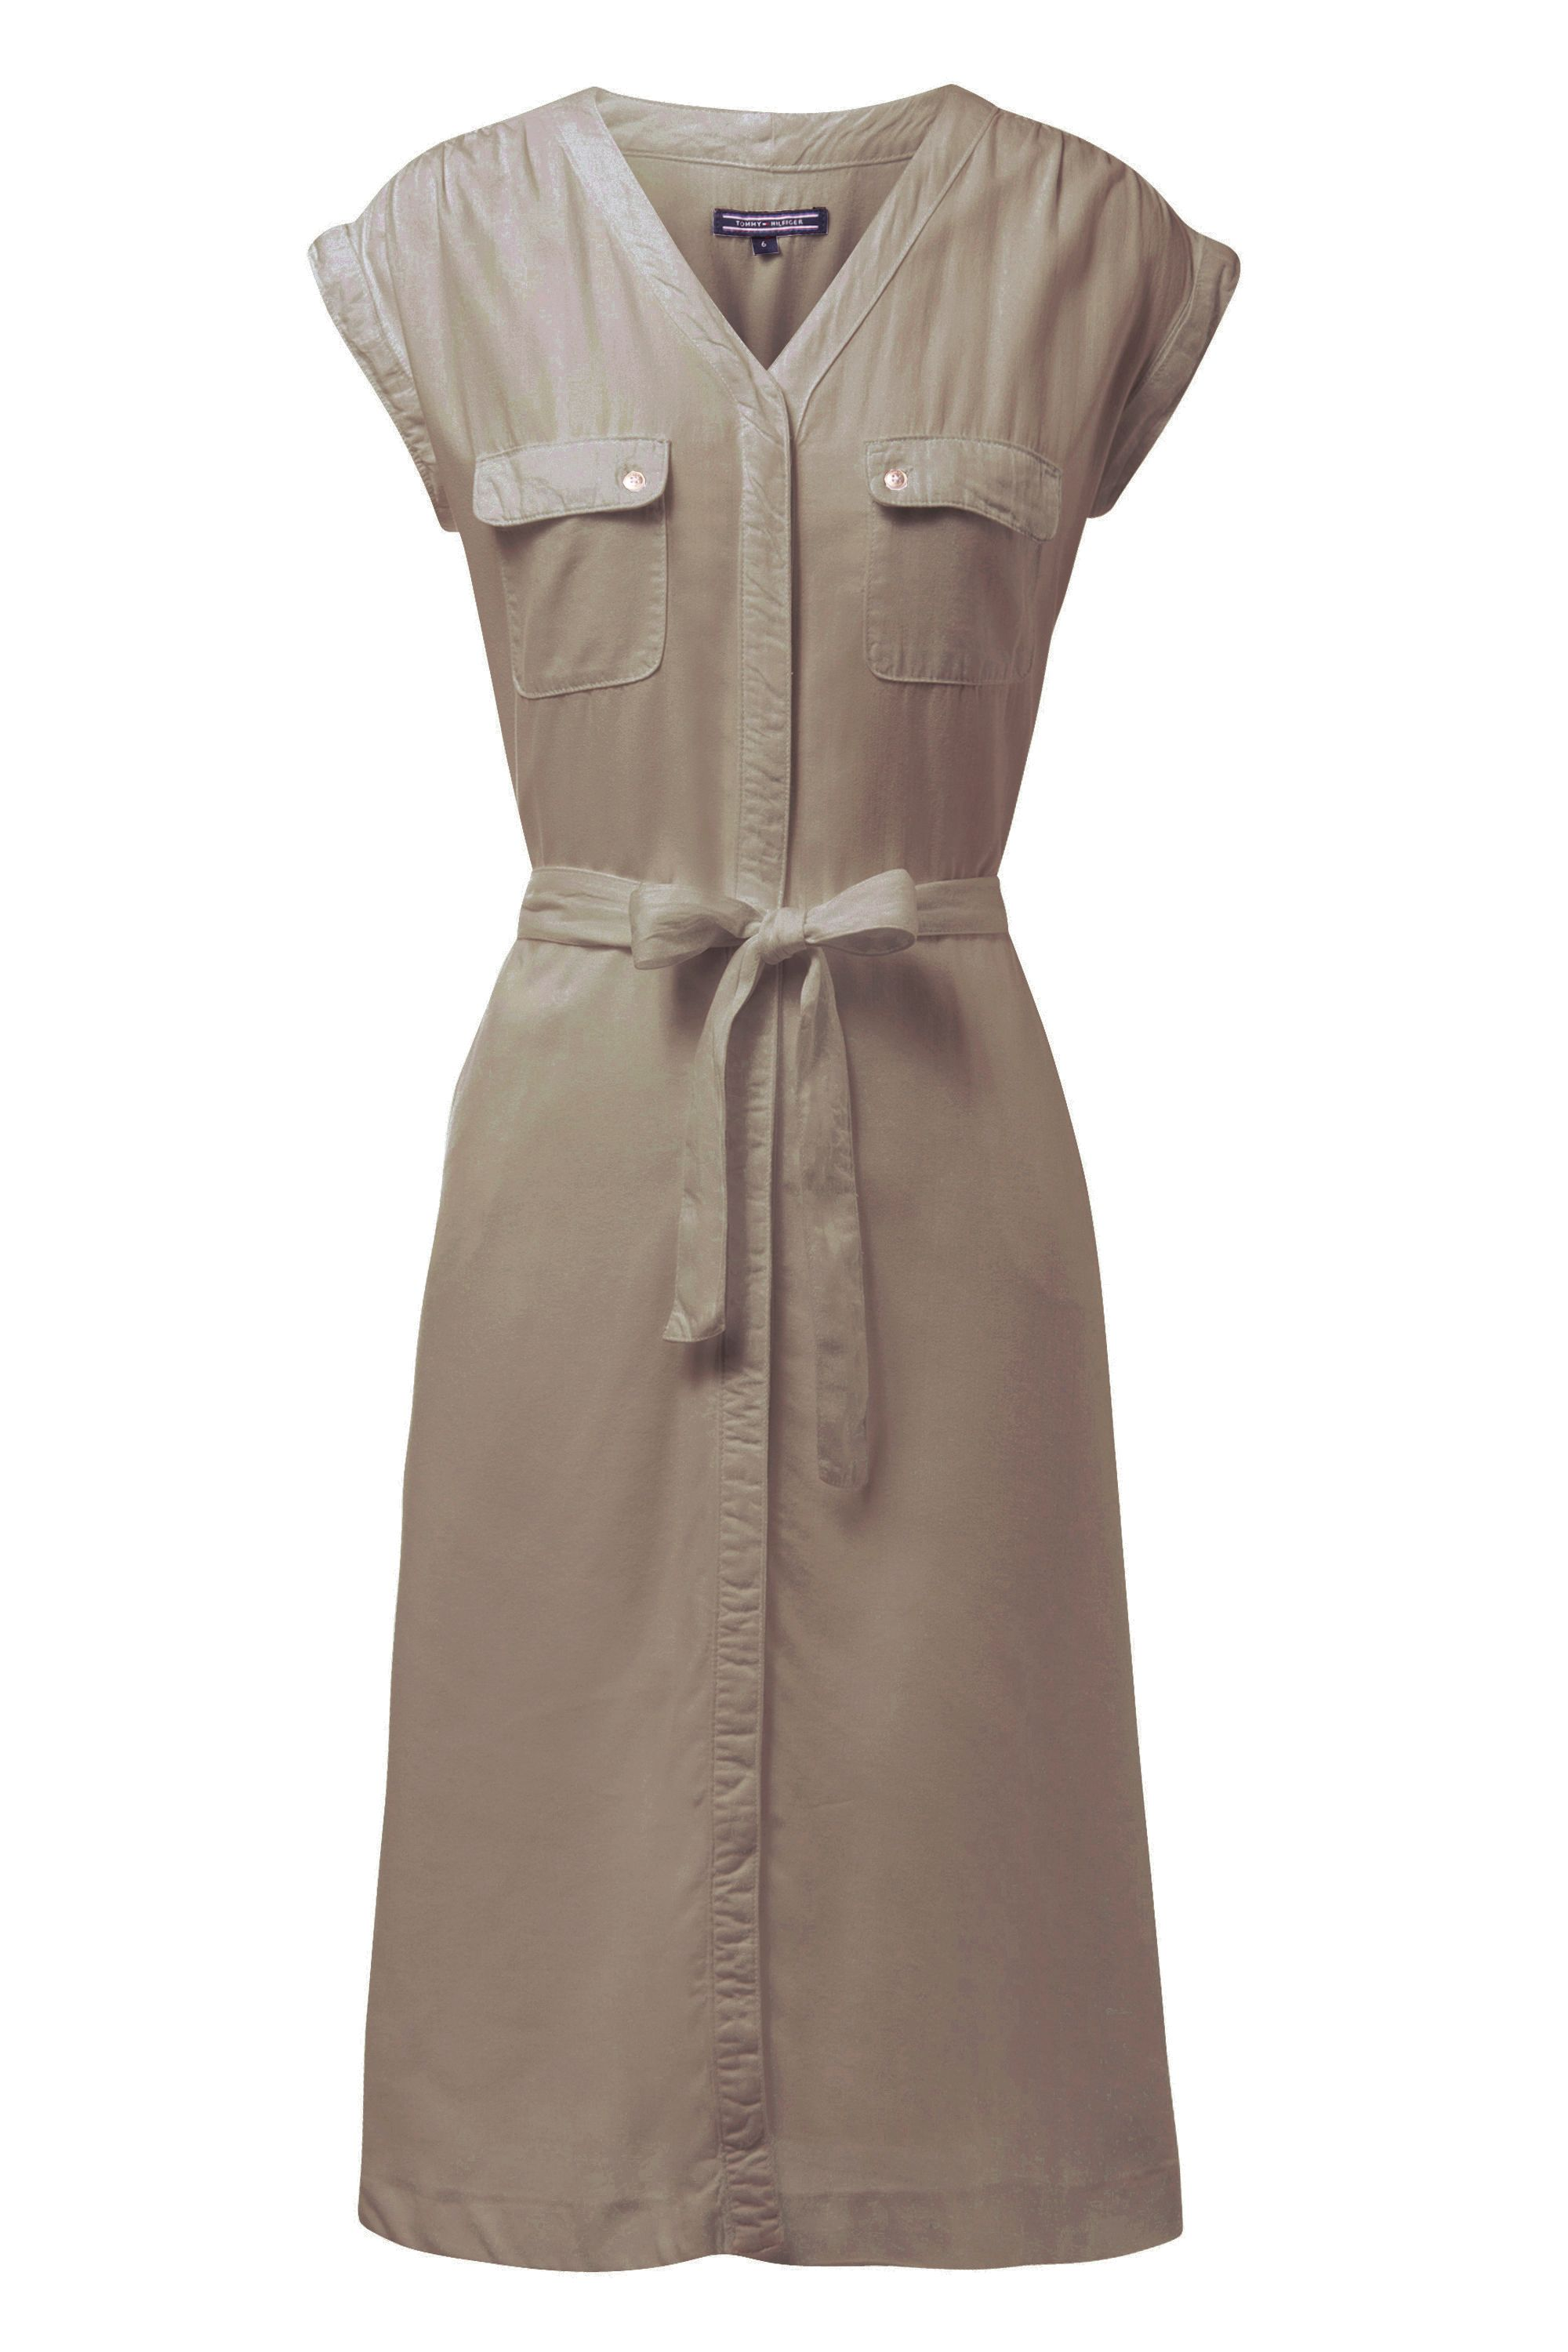 Tommy Hilfiger Tara Dress, Brown